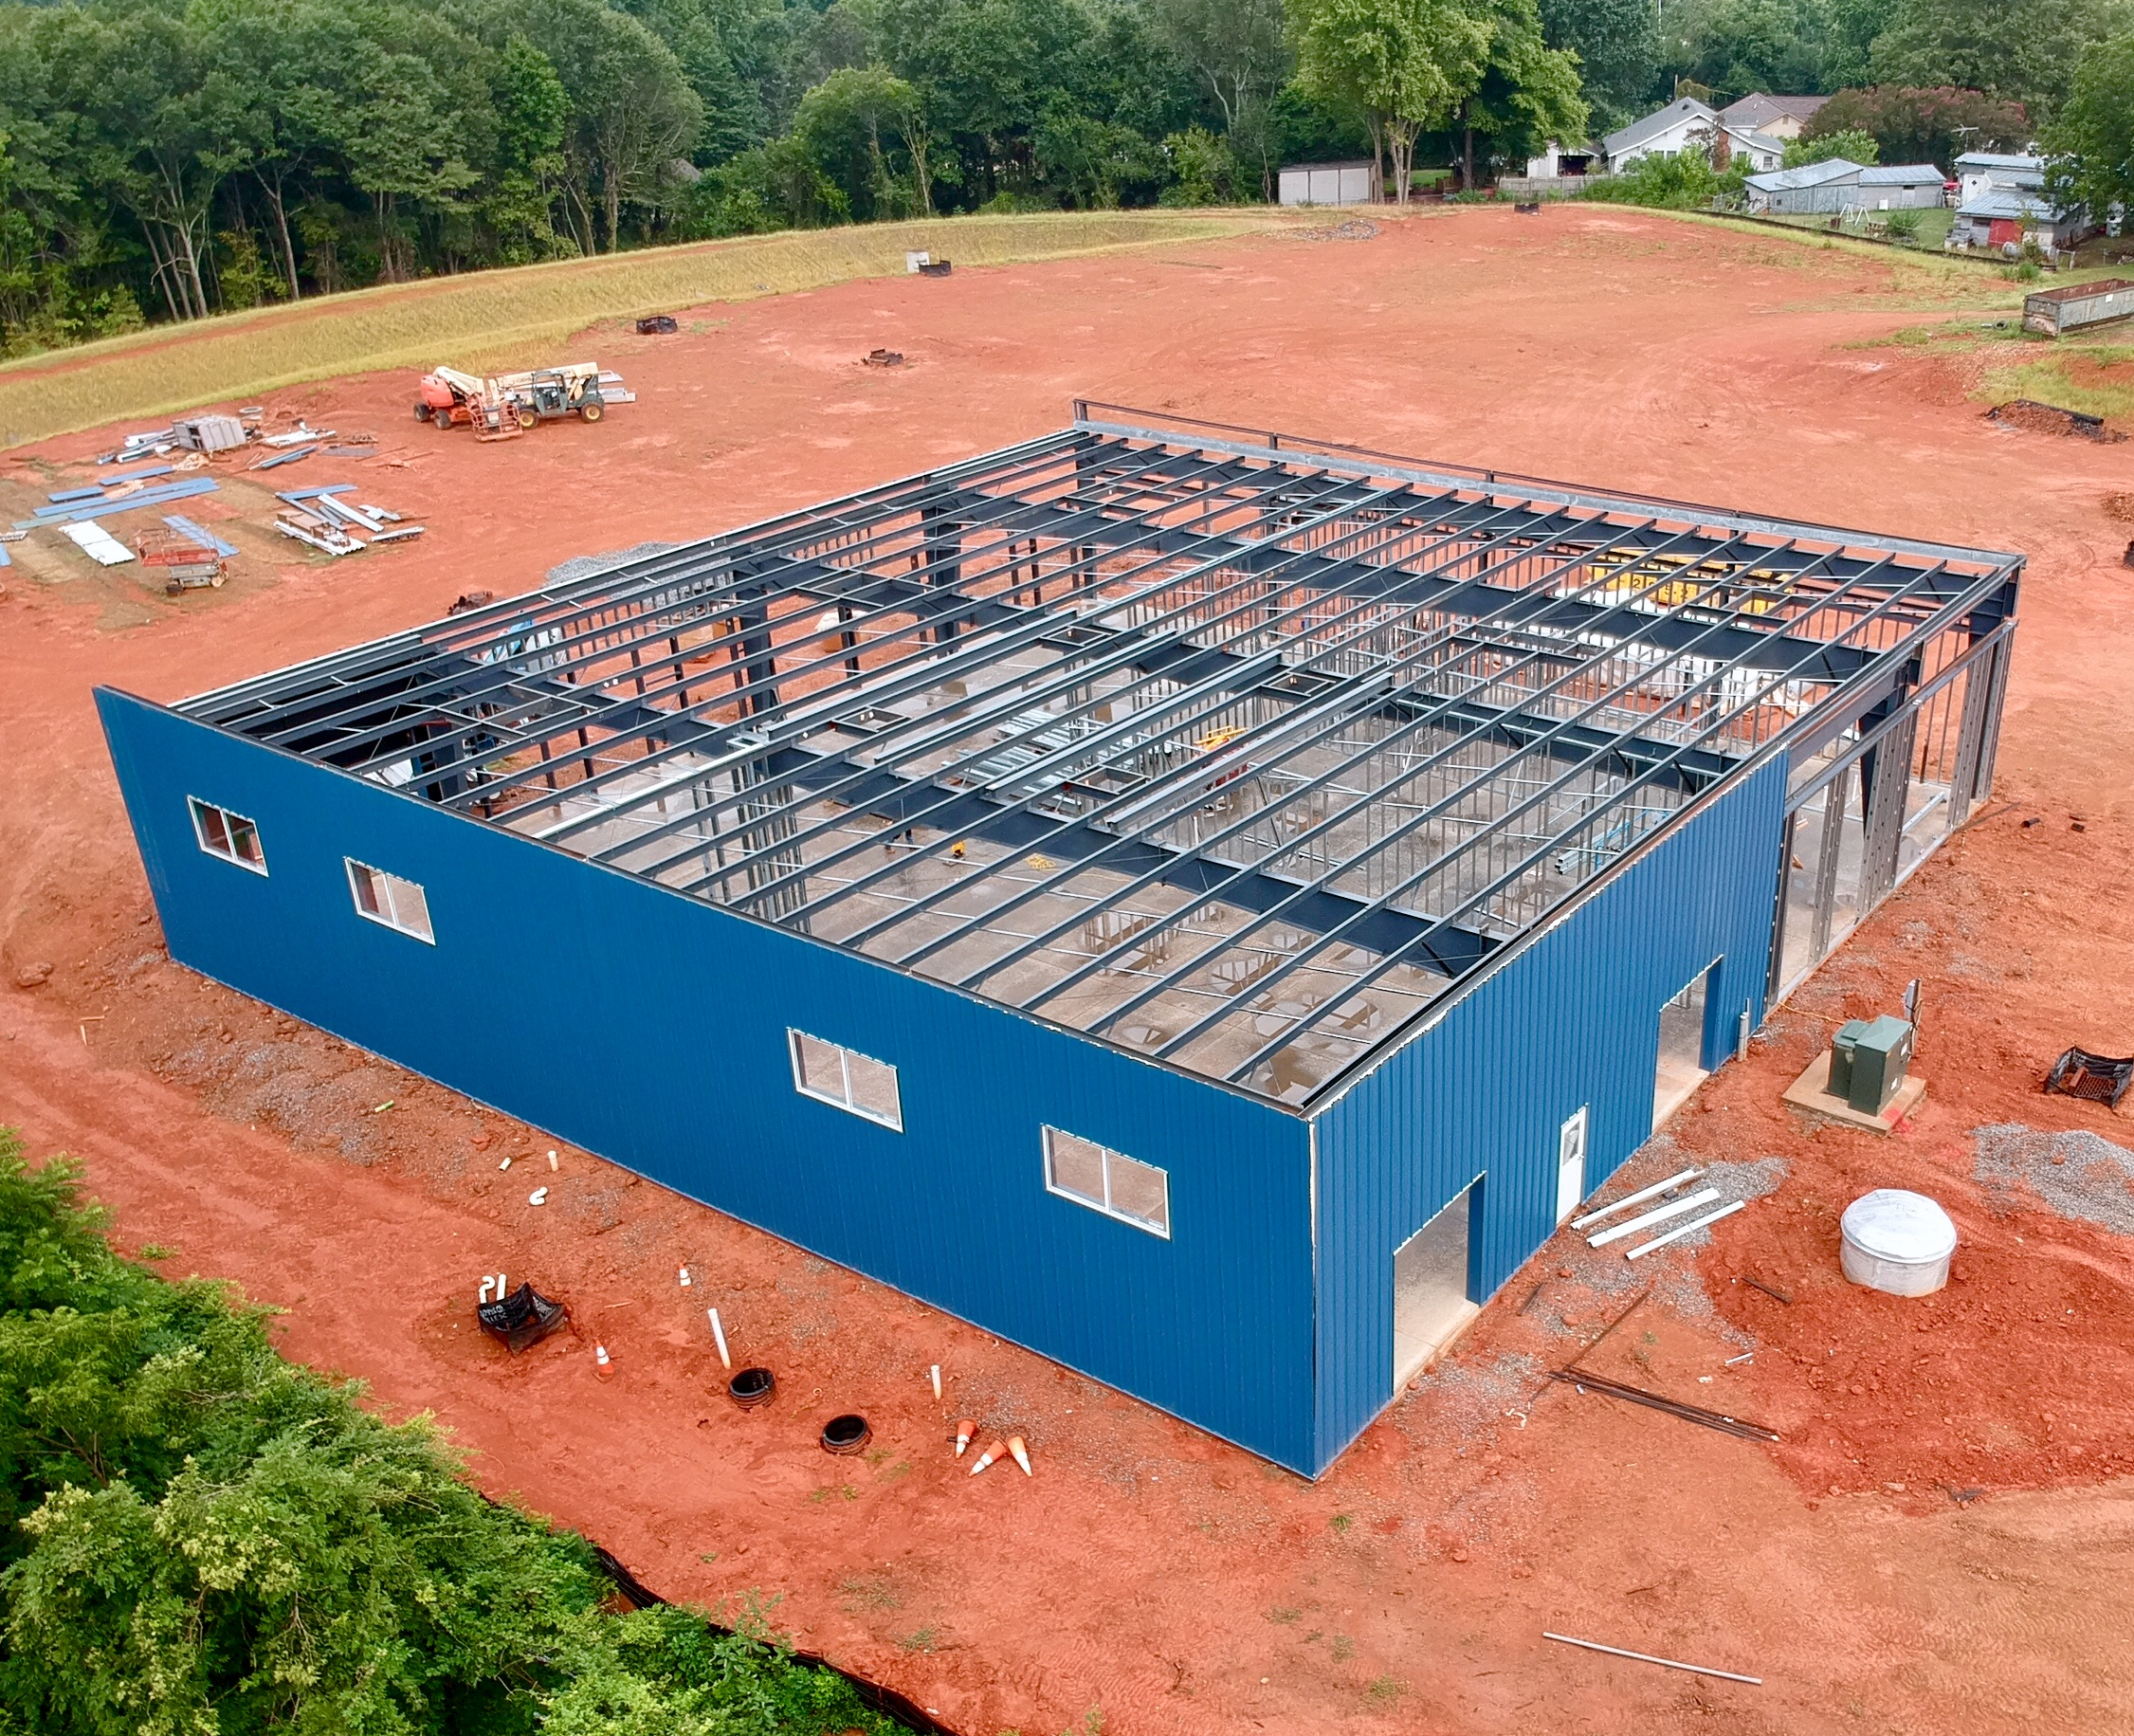 8/1/19  The Southern Growl Beer Company is deep in construction at it's new site, 155 N Buncombe. The building is up and will soon have all of its siding and walls.. if you have ever built a house, you know exactly how exciting it is! The brewing equipment is in production and will be delivered soon. It will still be a few weeks before we have an opening date, because construction and permitting is unpredictable until it's done. We are expecting to move out of our current space and open the doors to the new Brewery sometime in October.   For now, there's lots to do. Sure it can be stressful to look at that long to-do list, but this is what we live for. We love building things and making a space into an awesome place where people can come together and feel at home. This week, Matt's been in the workshop every day making tables & benches, and preparing wood for the reclaimed wood wall. Anna stayed up late preparing for the new and improved beer style flow chart for the brewery. Jason has been brewing beer and tweaking the recipes to nail down the IPA, Marzen, Irish Red, Witbier, and Stout. And Joey was testing menu items for ultimate deliciousness on opening night.   If you are itching to get involved with the new brewery, mark your calendar for the launch of our Indiegogo campaign.  We will be launching the crowdfunding campaign..  Monday AUGUST 5 at noon.   We had a lot of fun coming up with unique perks that you will love.. like a little TSG recipe book, Sponsor a Bar Stool, House Pickles, Burger collaboration dedication, and more. No need to restrain yourself, just get one of each.